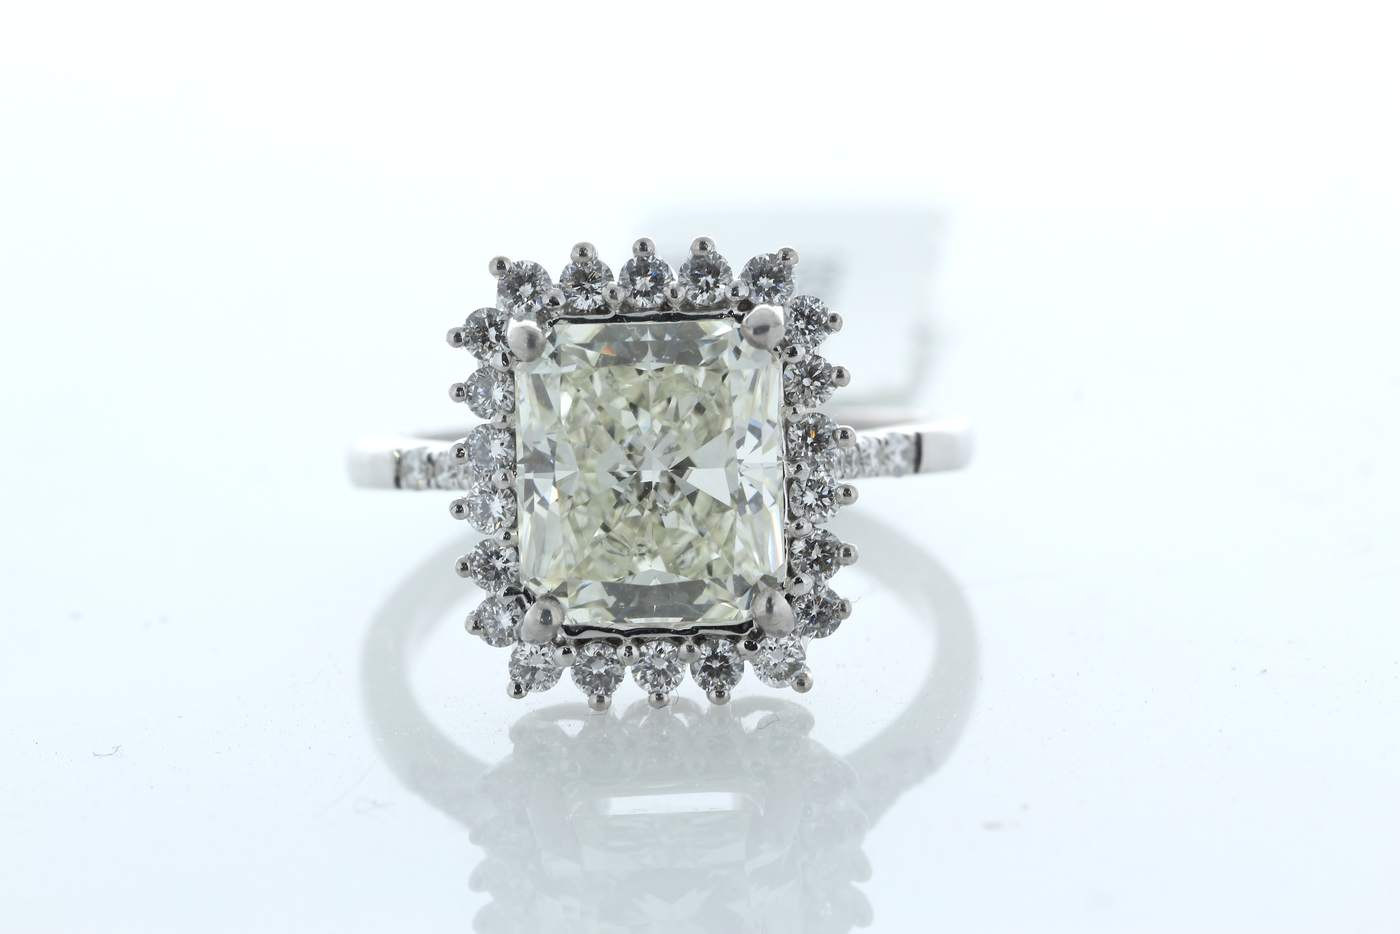 Lot 30 - 18ct White Gold Halo Set Ring 3.86 Carats